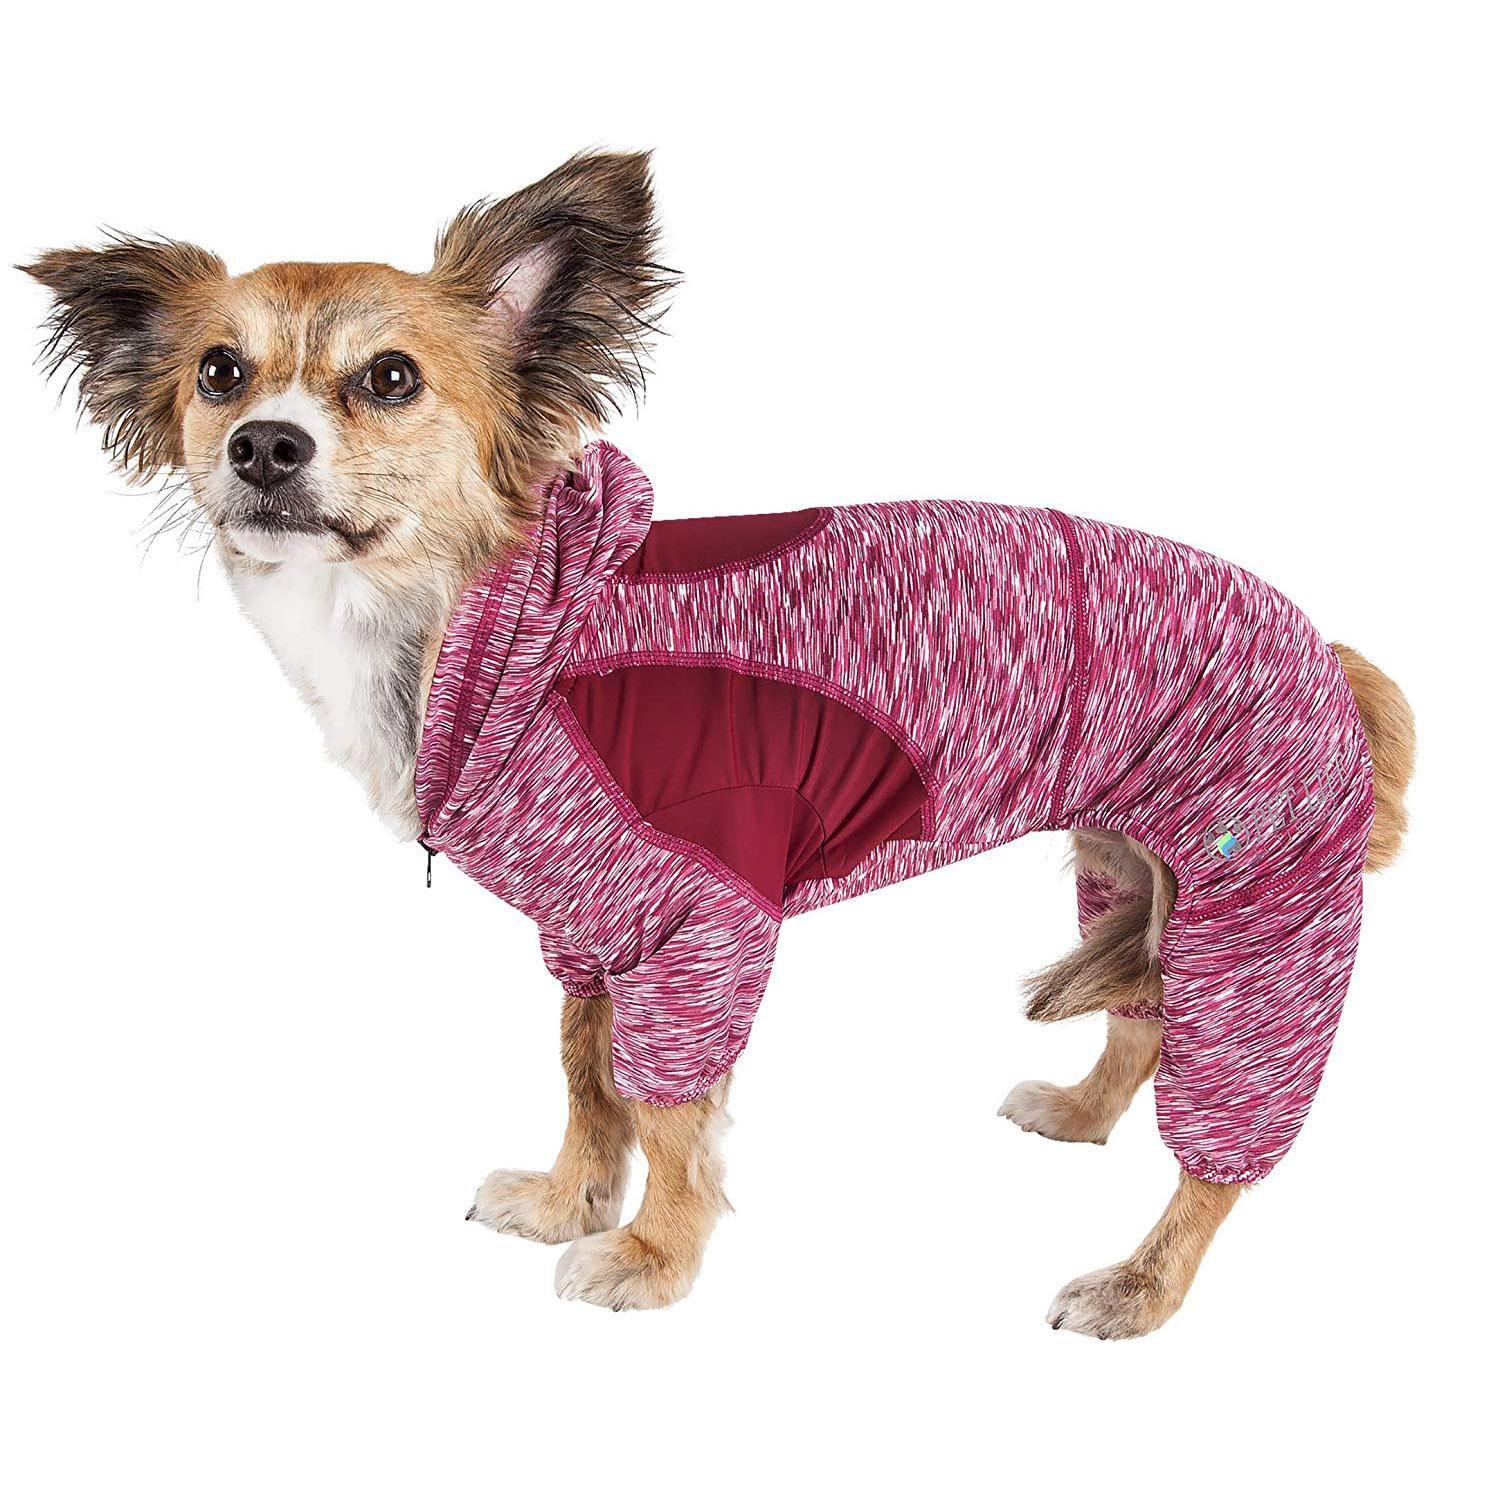 Pet Life ACTIVE 'Downward Dog' Performance Full Body Warm-Up Dog Hoodie - Burgundy